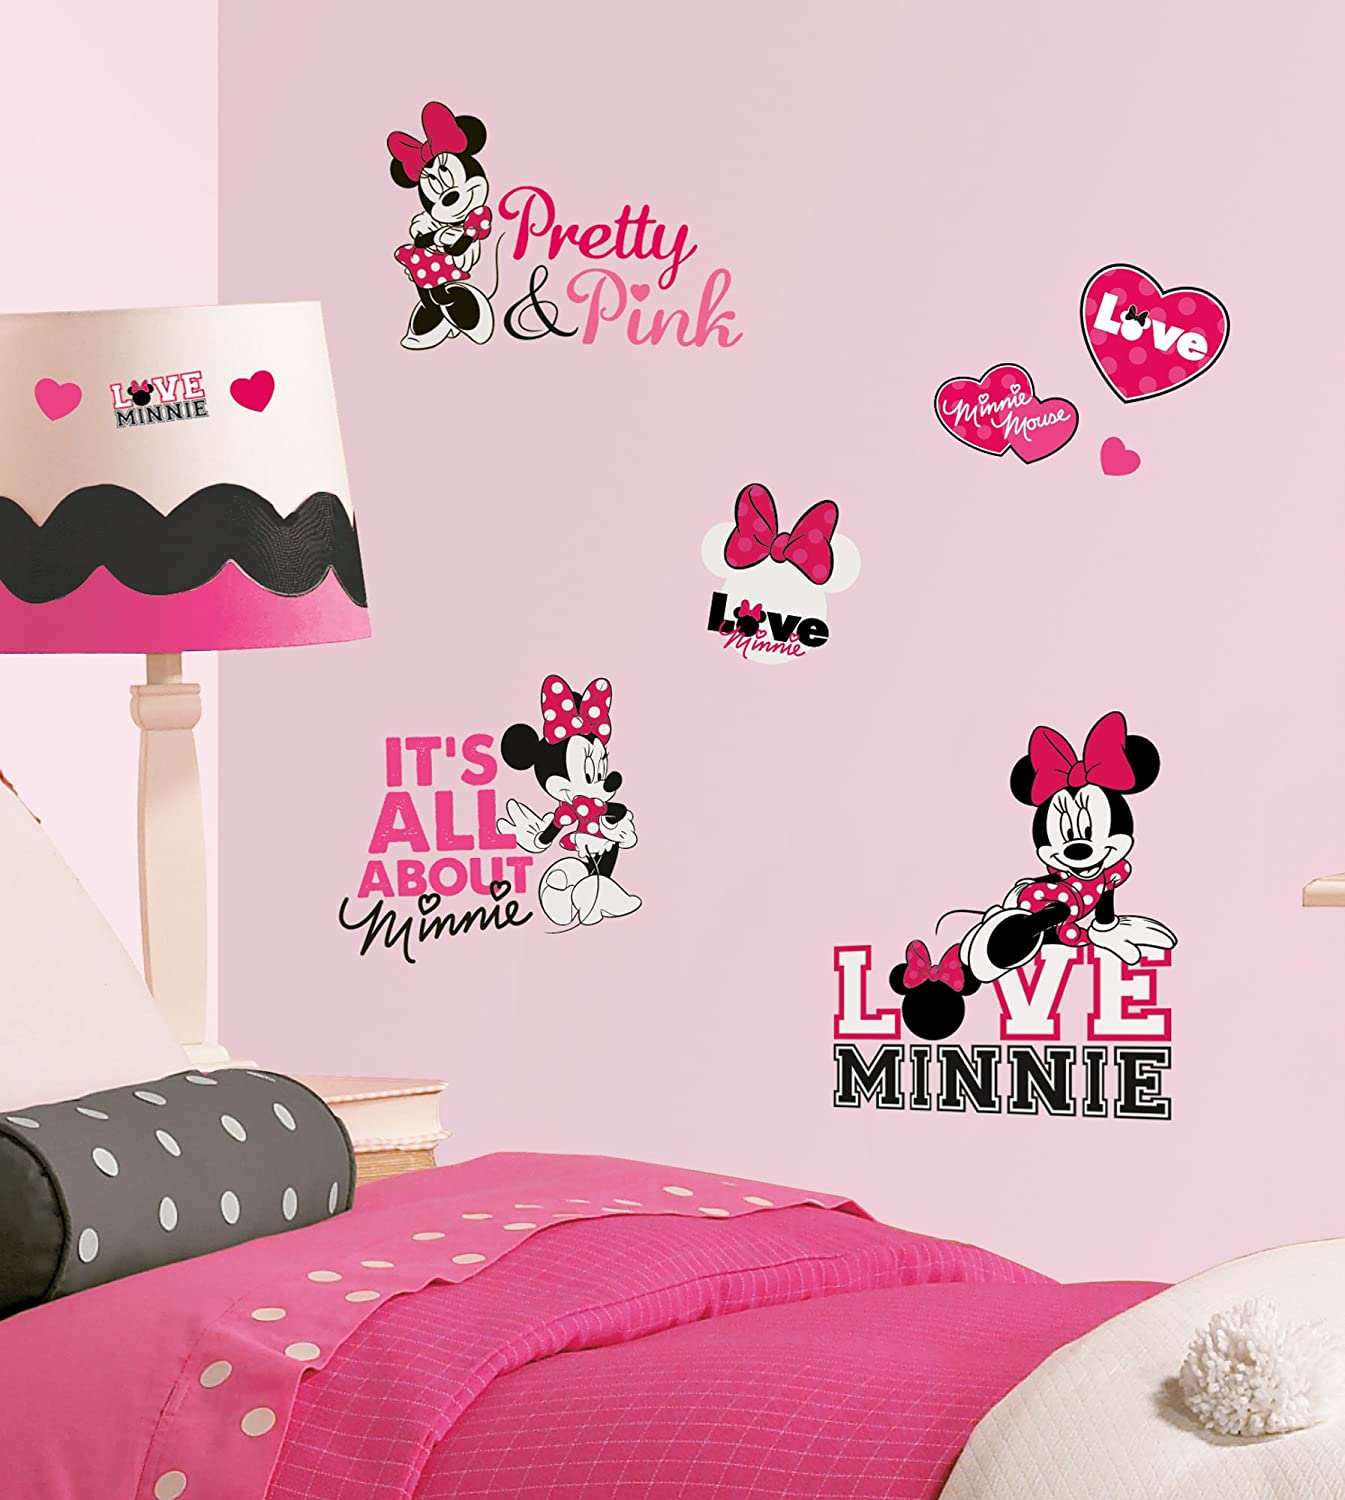 Awesome Roommates Rmk2180Scs Mickey And Friends   Minnie Loves Pink Peel And Stick Wall  Decals, 28 Count   Decorative Wall Appliques   Amazon.com